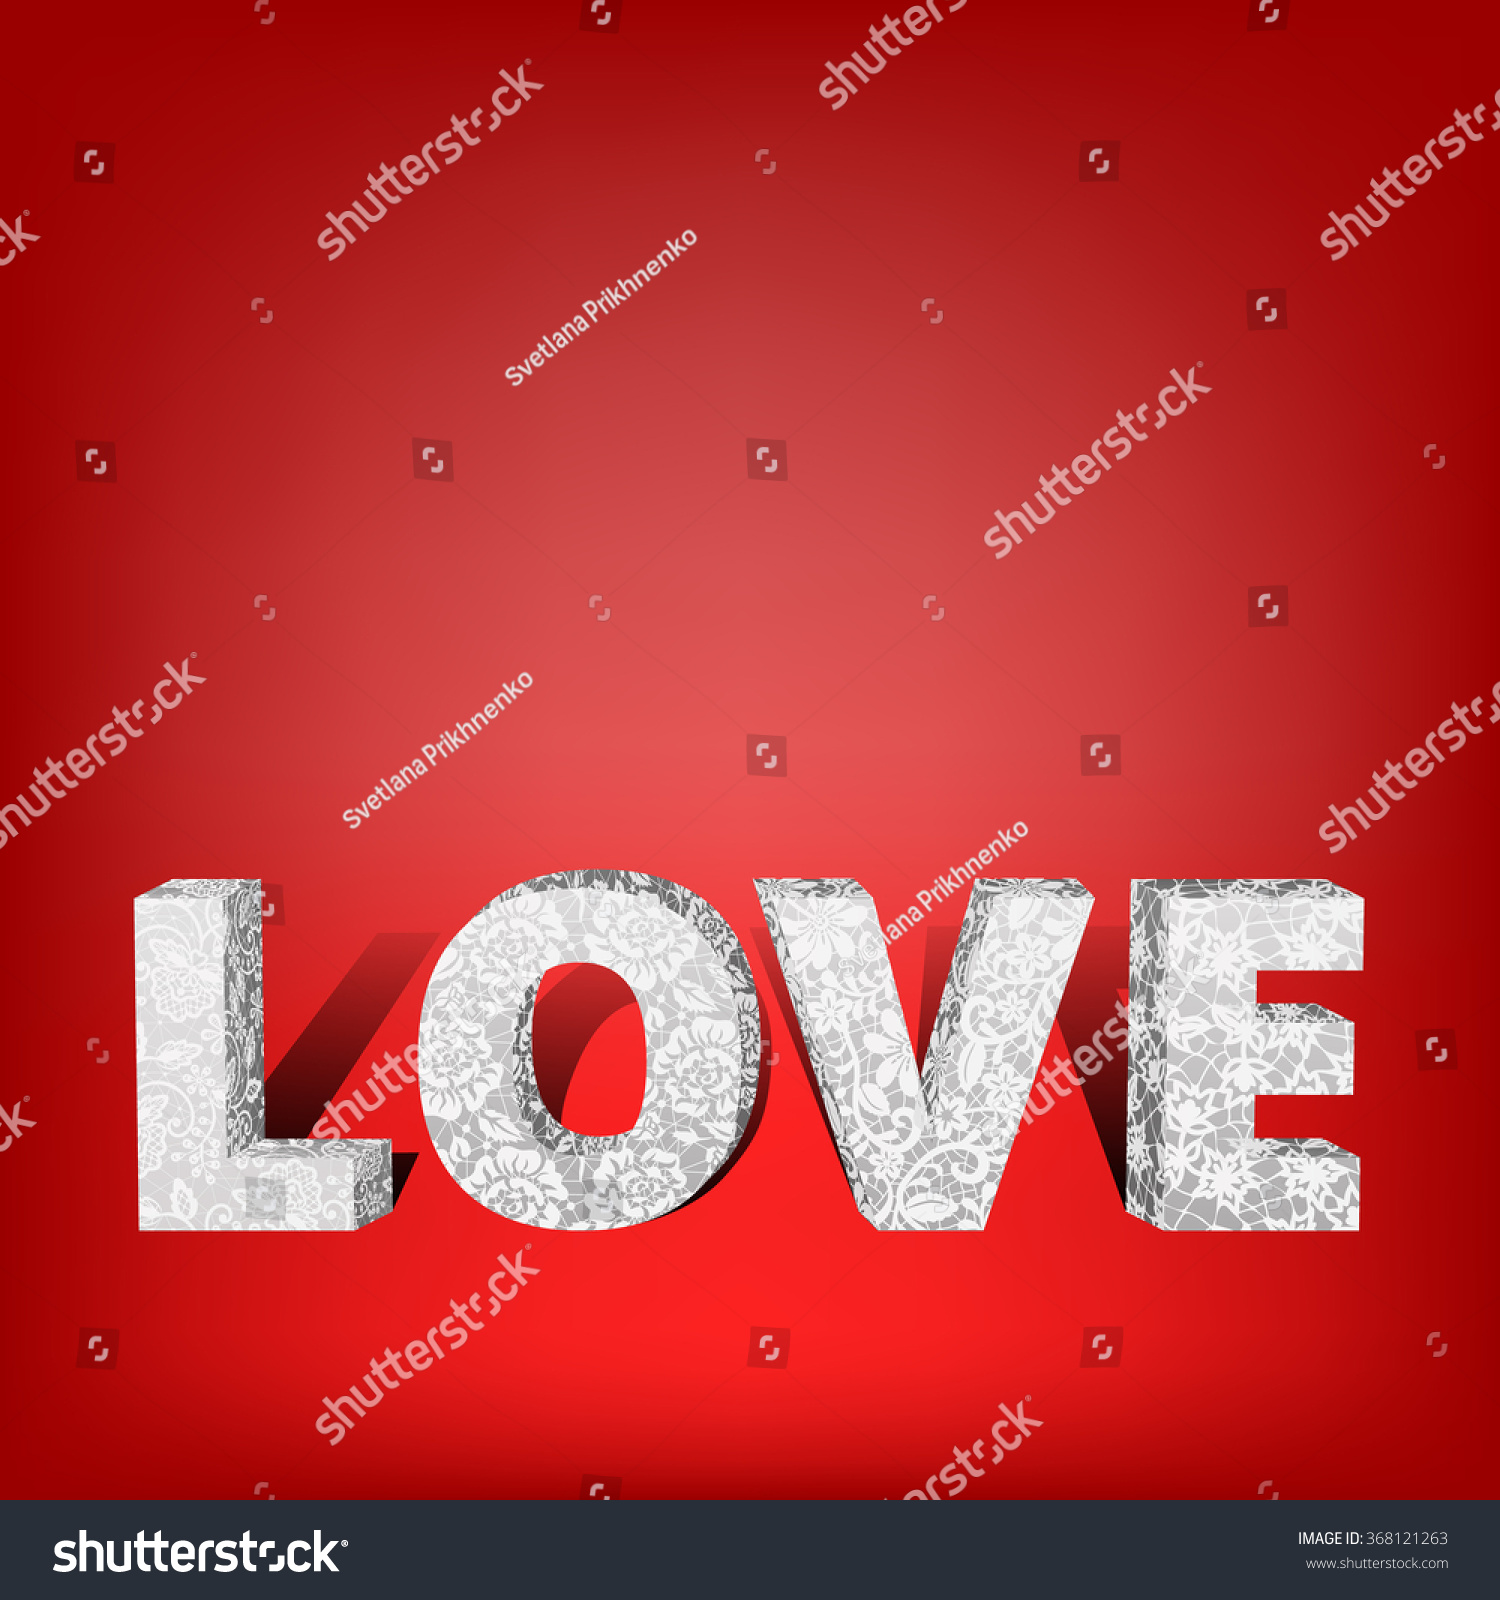 Volumetric Lace Word Love  D Letters Stock Il Ration  Shutterstock